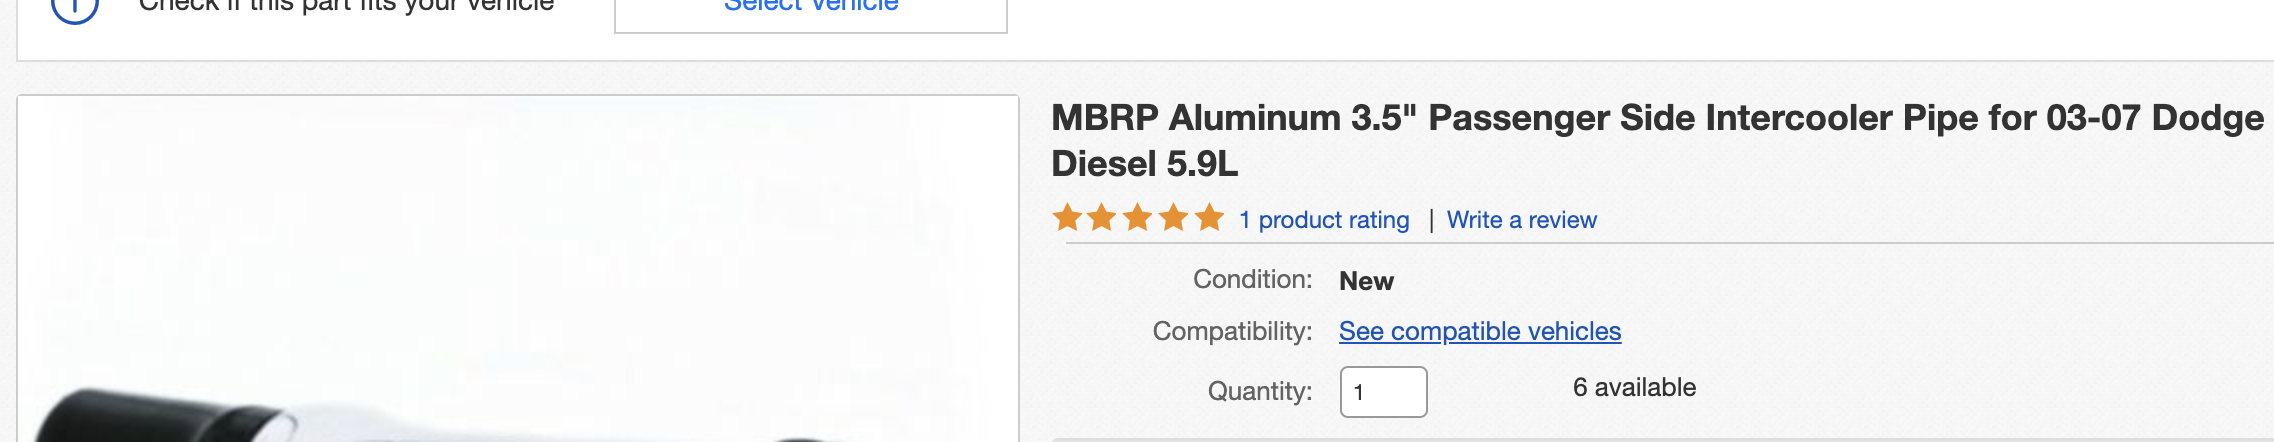 eBay Product Reference Id